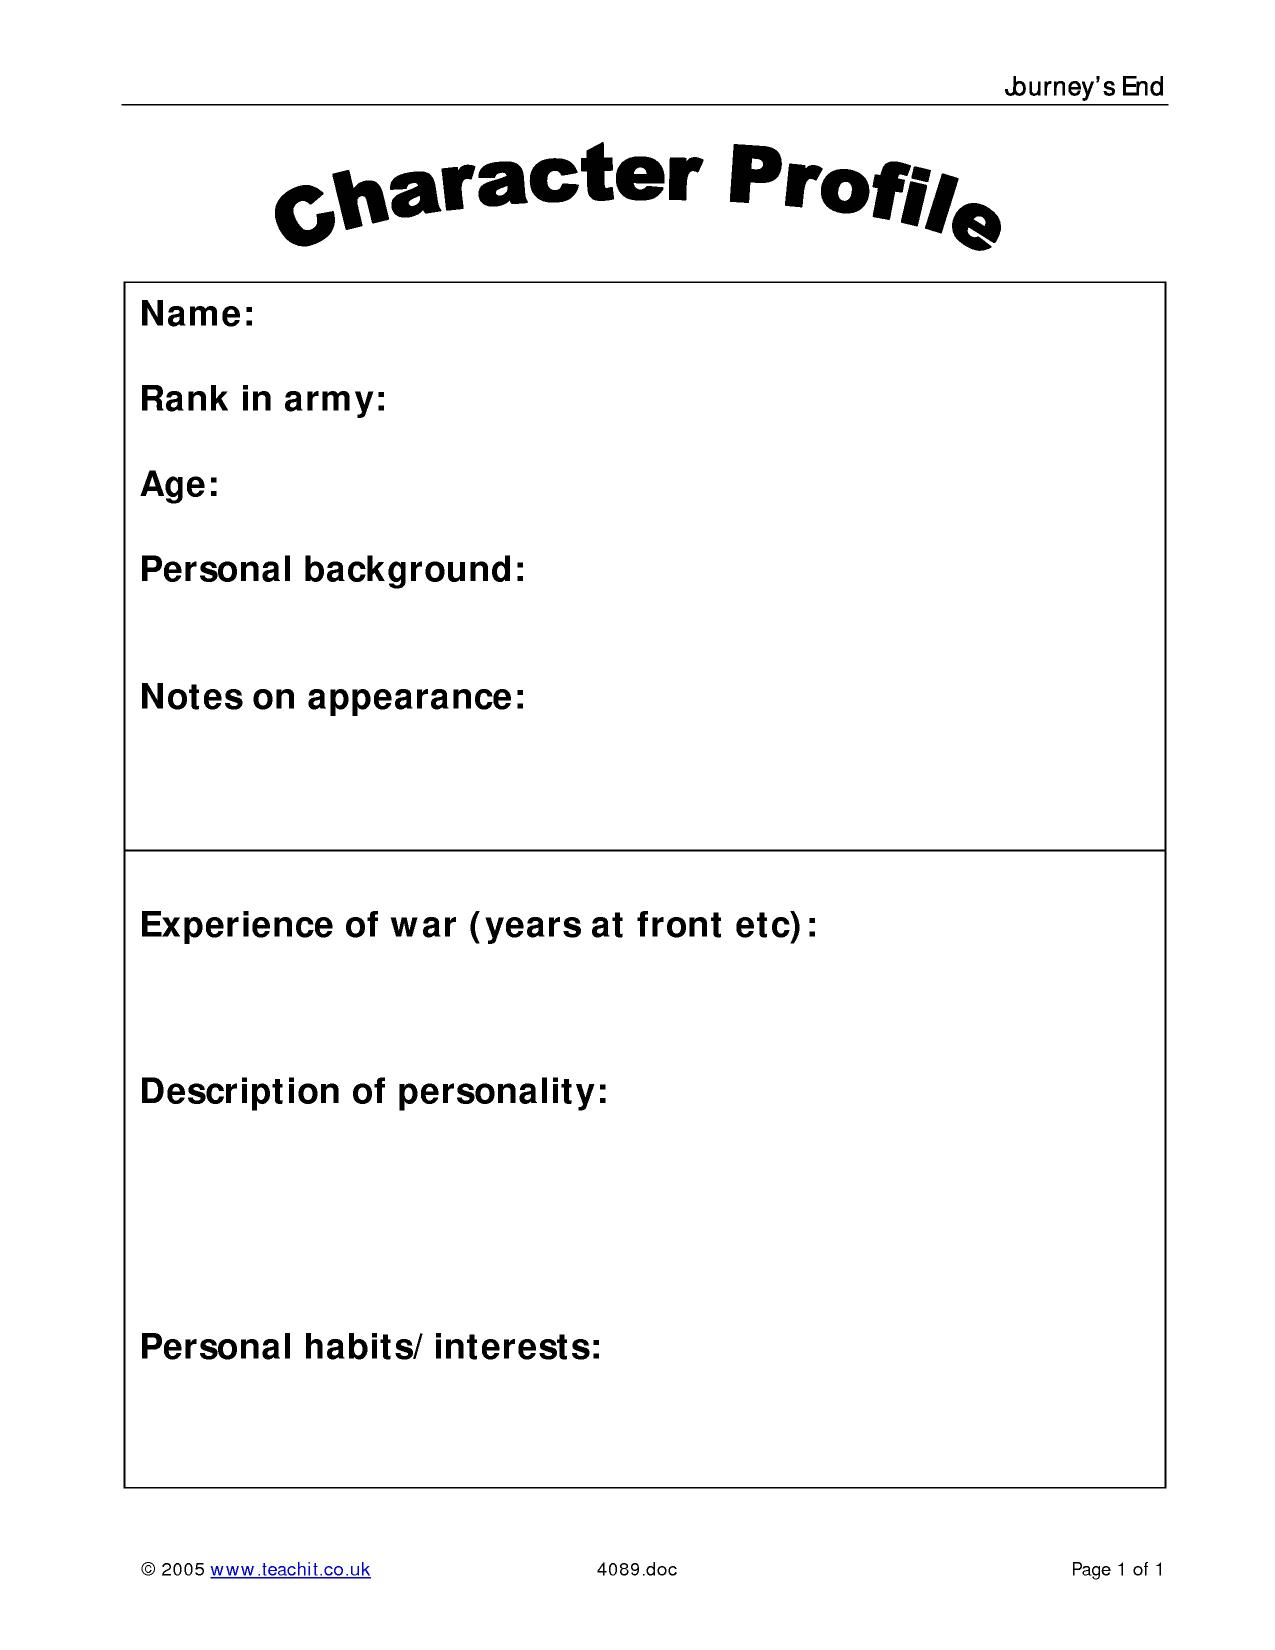 Free Worksheet Character Profile Worksheet Phinixi – Character Profile Worksheet